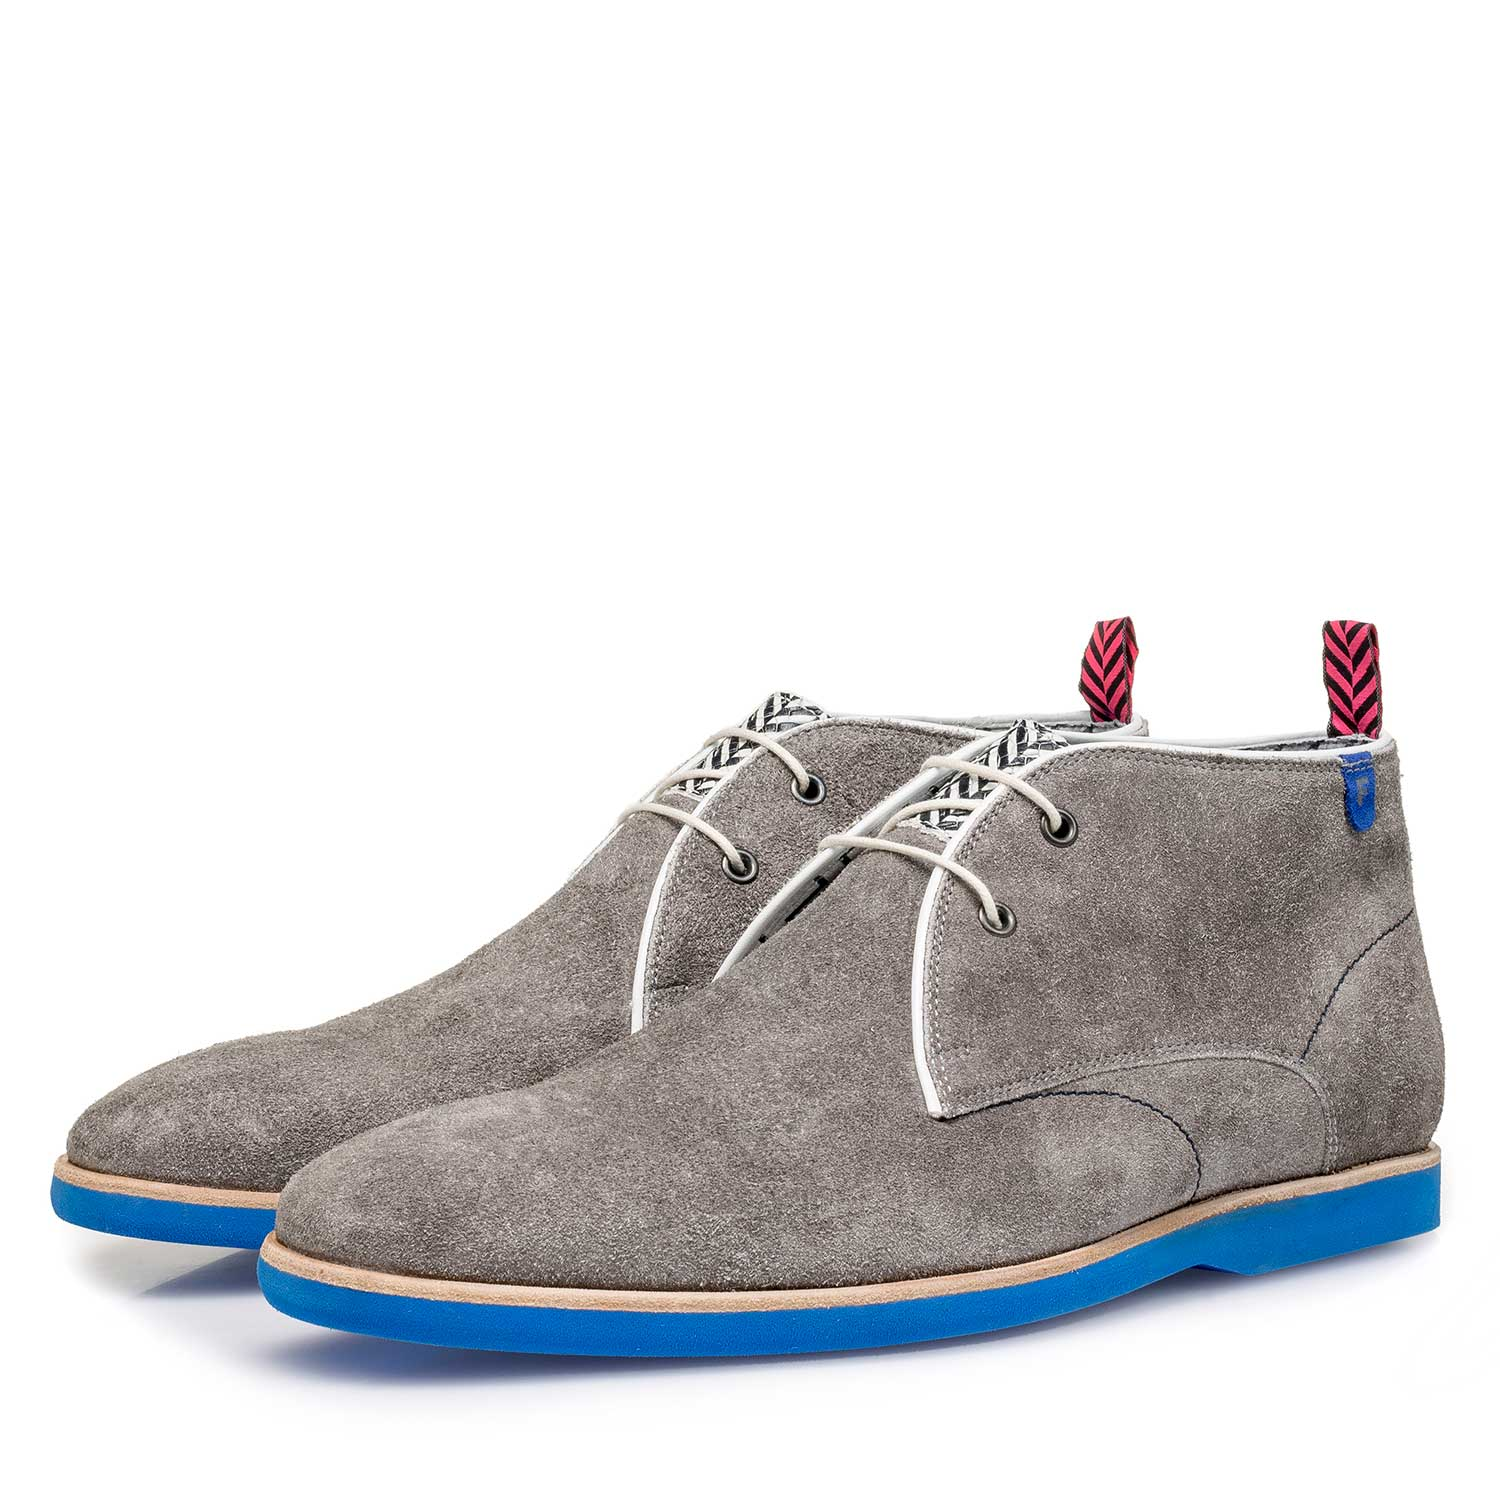 10014/03 - Grey rough suede leather lace boot